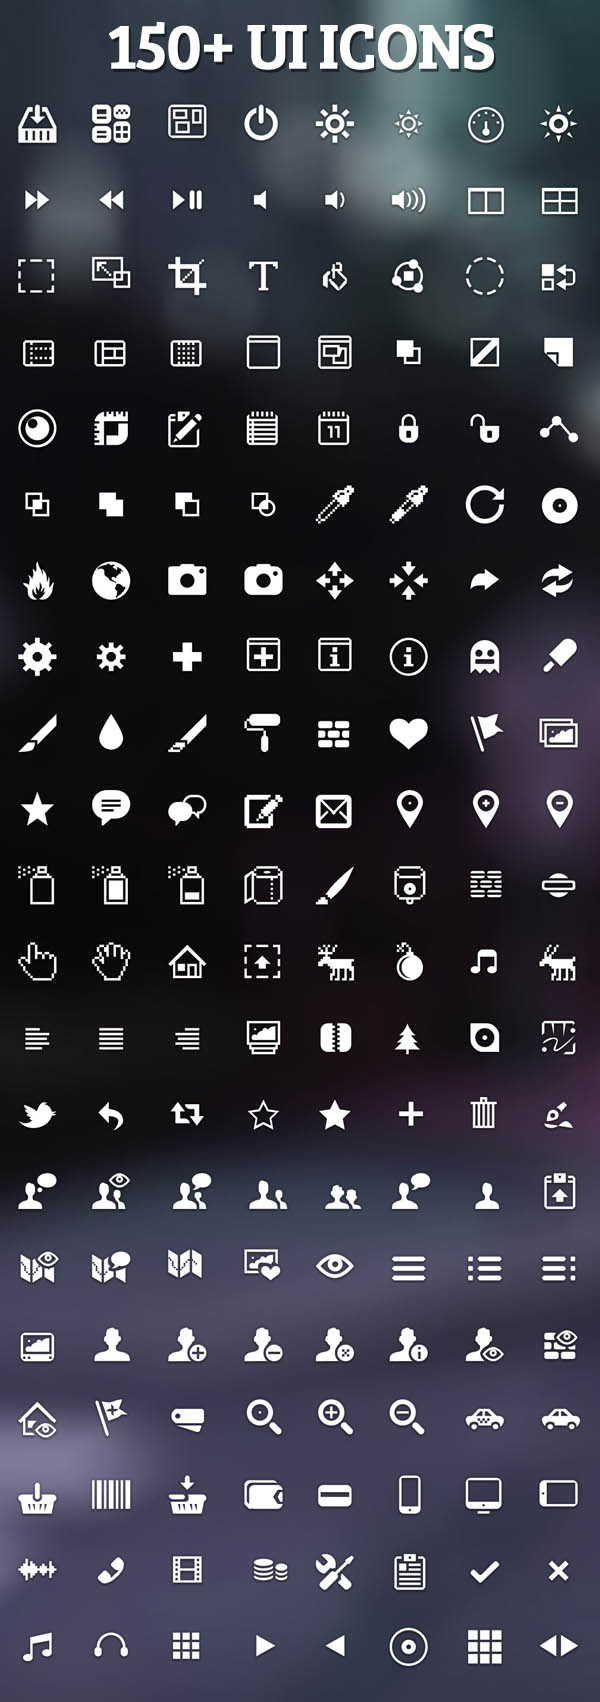 Psd UI Icons - Preview